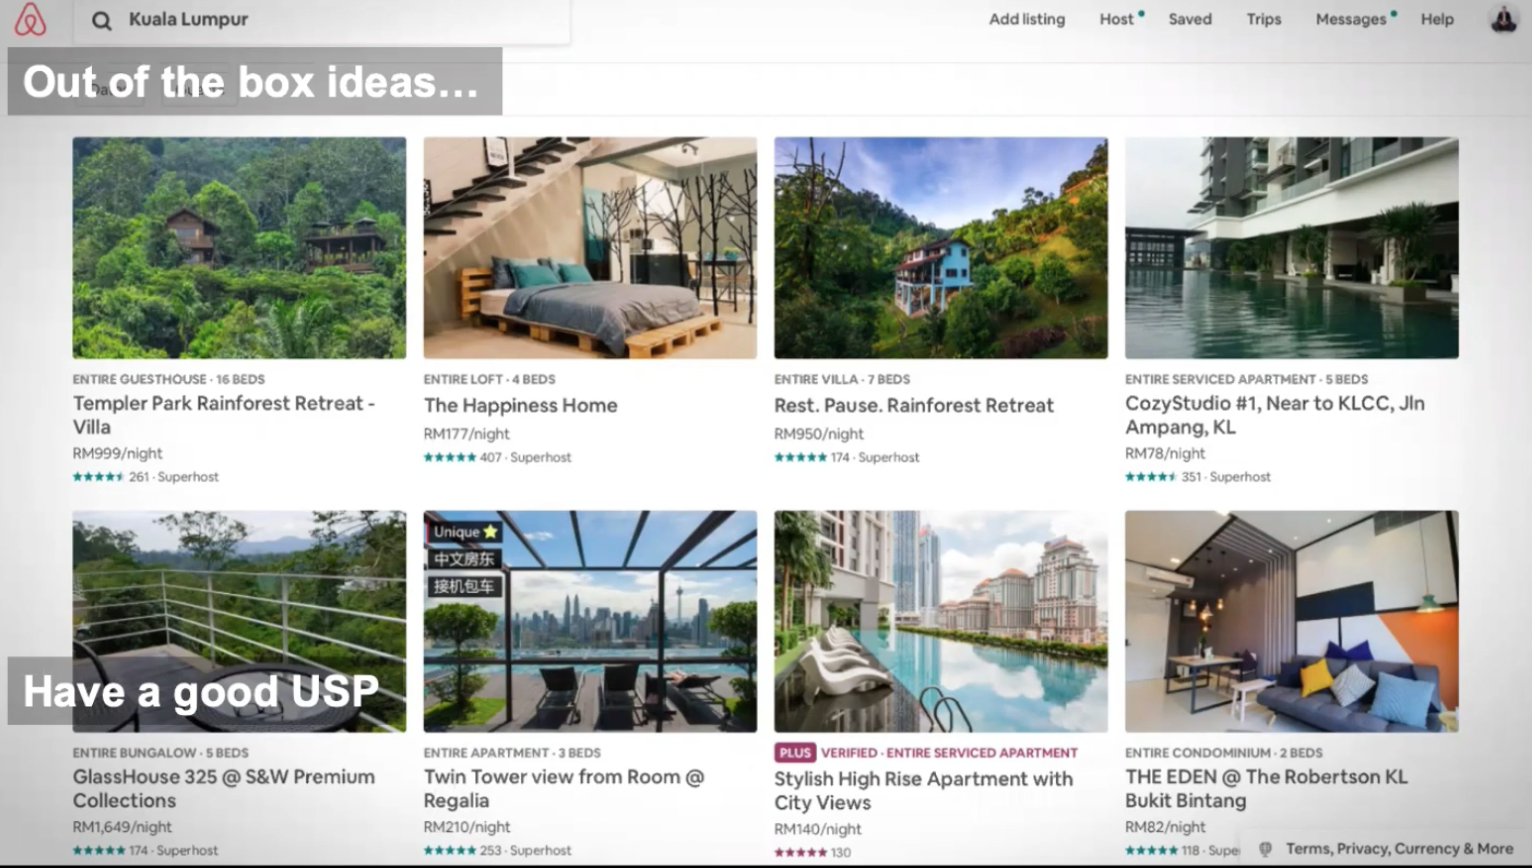 Revealing 5 Secrets to Boost Rental Income of Your Property via AirBnB